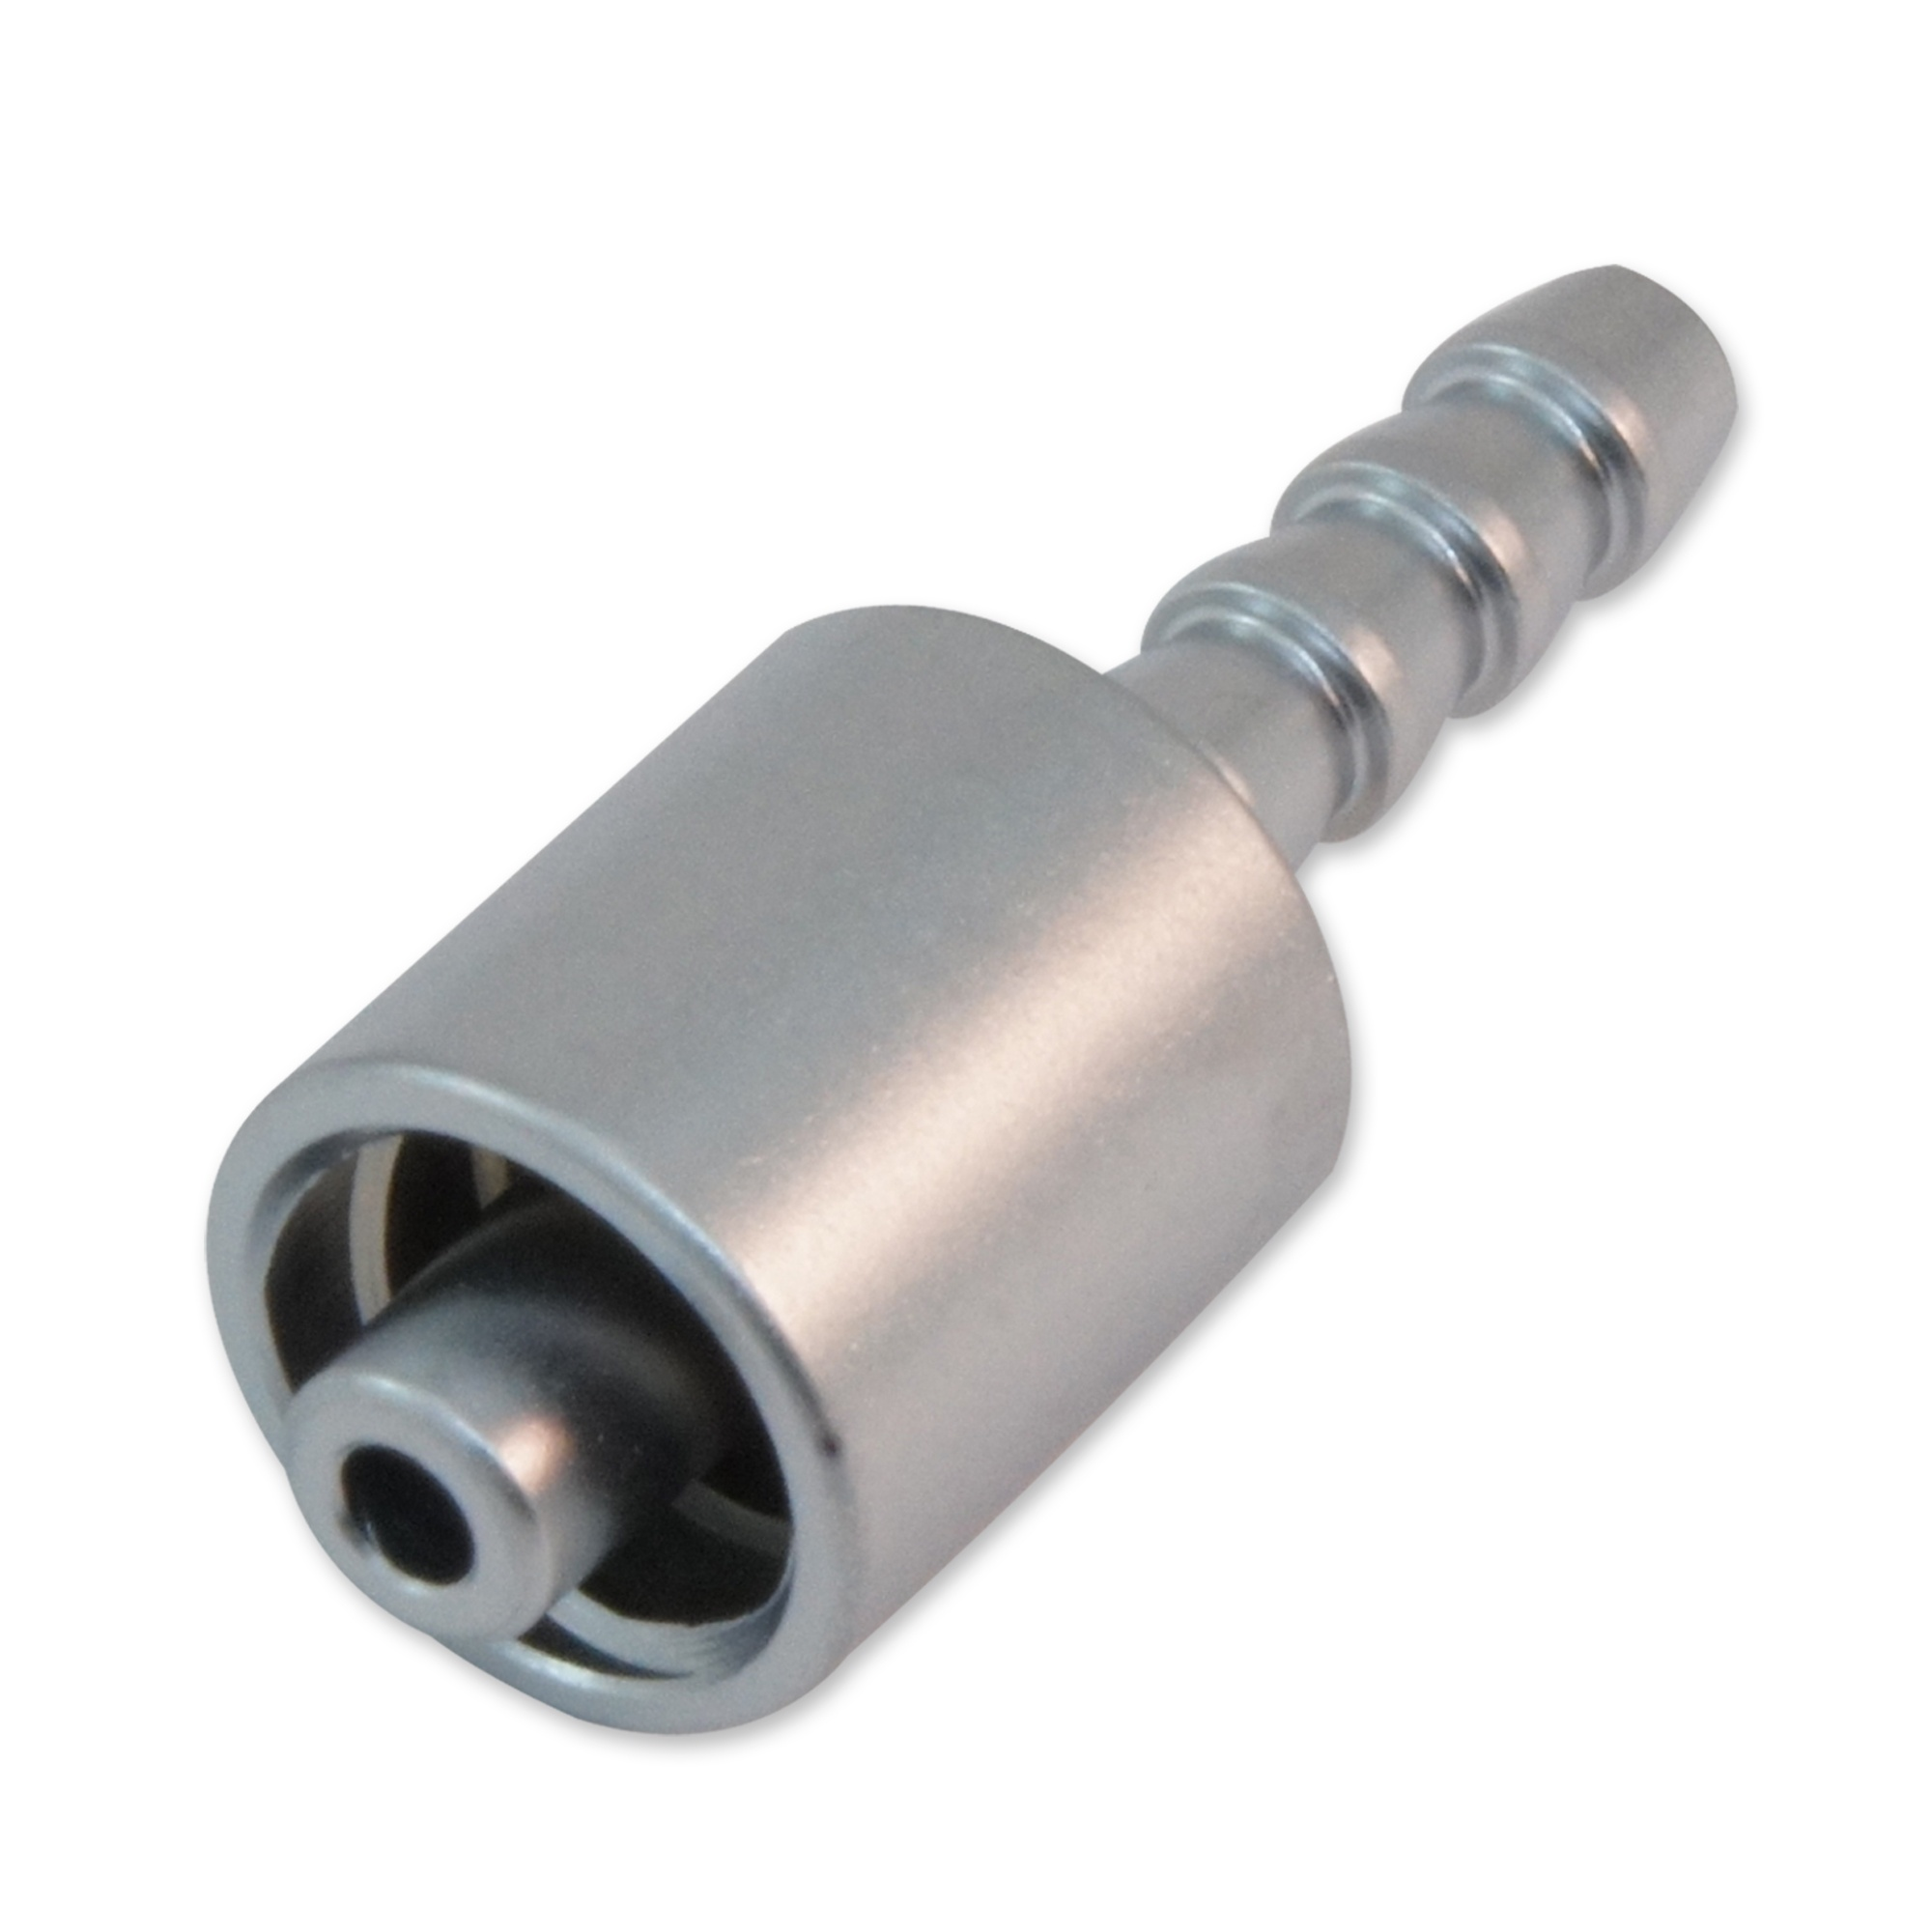 Tube Connector Image